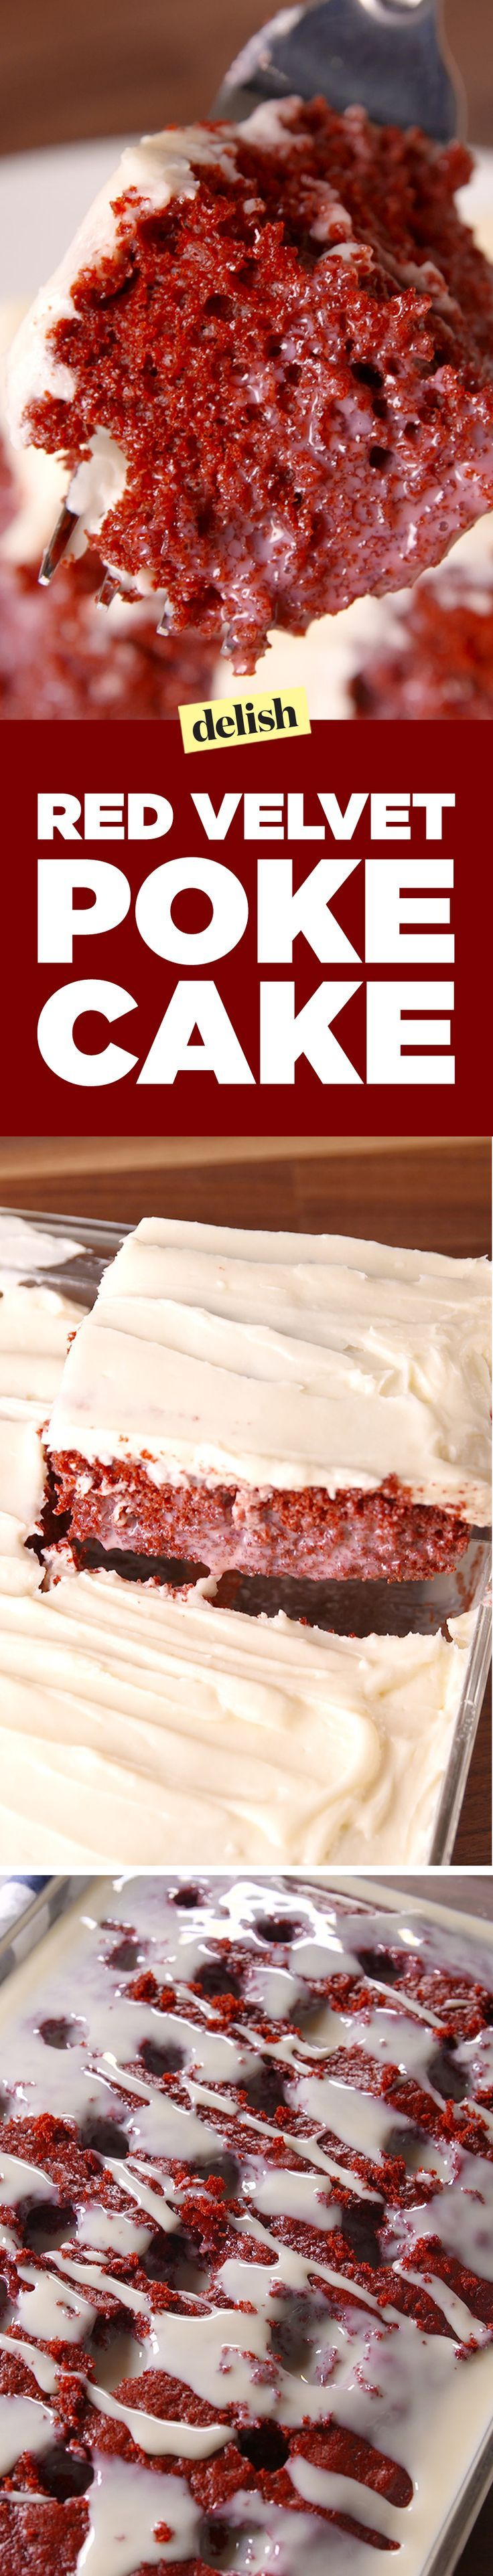 This red velvet poke cake is the perfect dessert for any party. Get the recipe on http://Delish.com.